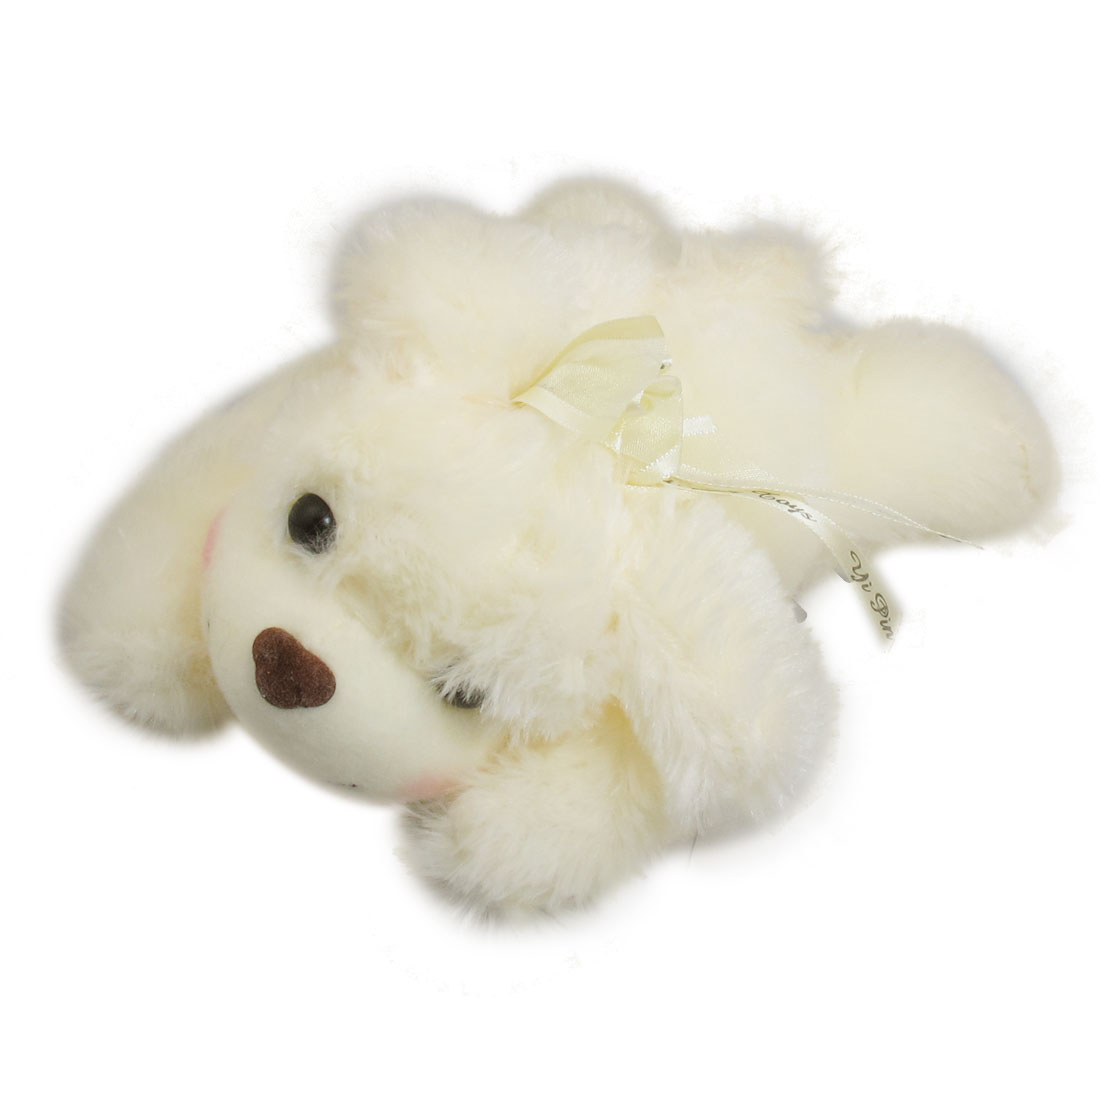 Beige Cute Plush Stuffed Fuzzy Play Tummy Puppy Scented Dog Toy for Kids